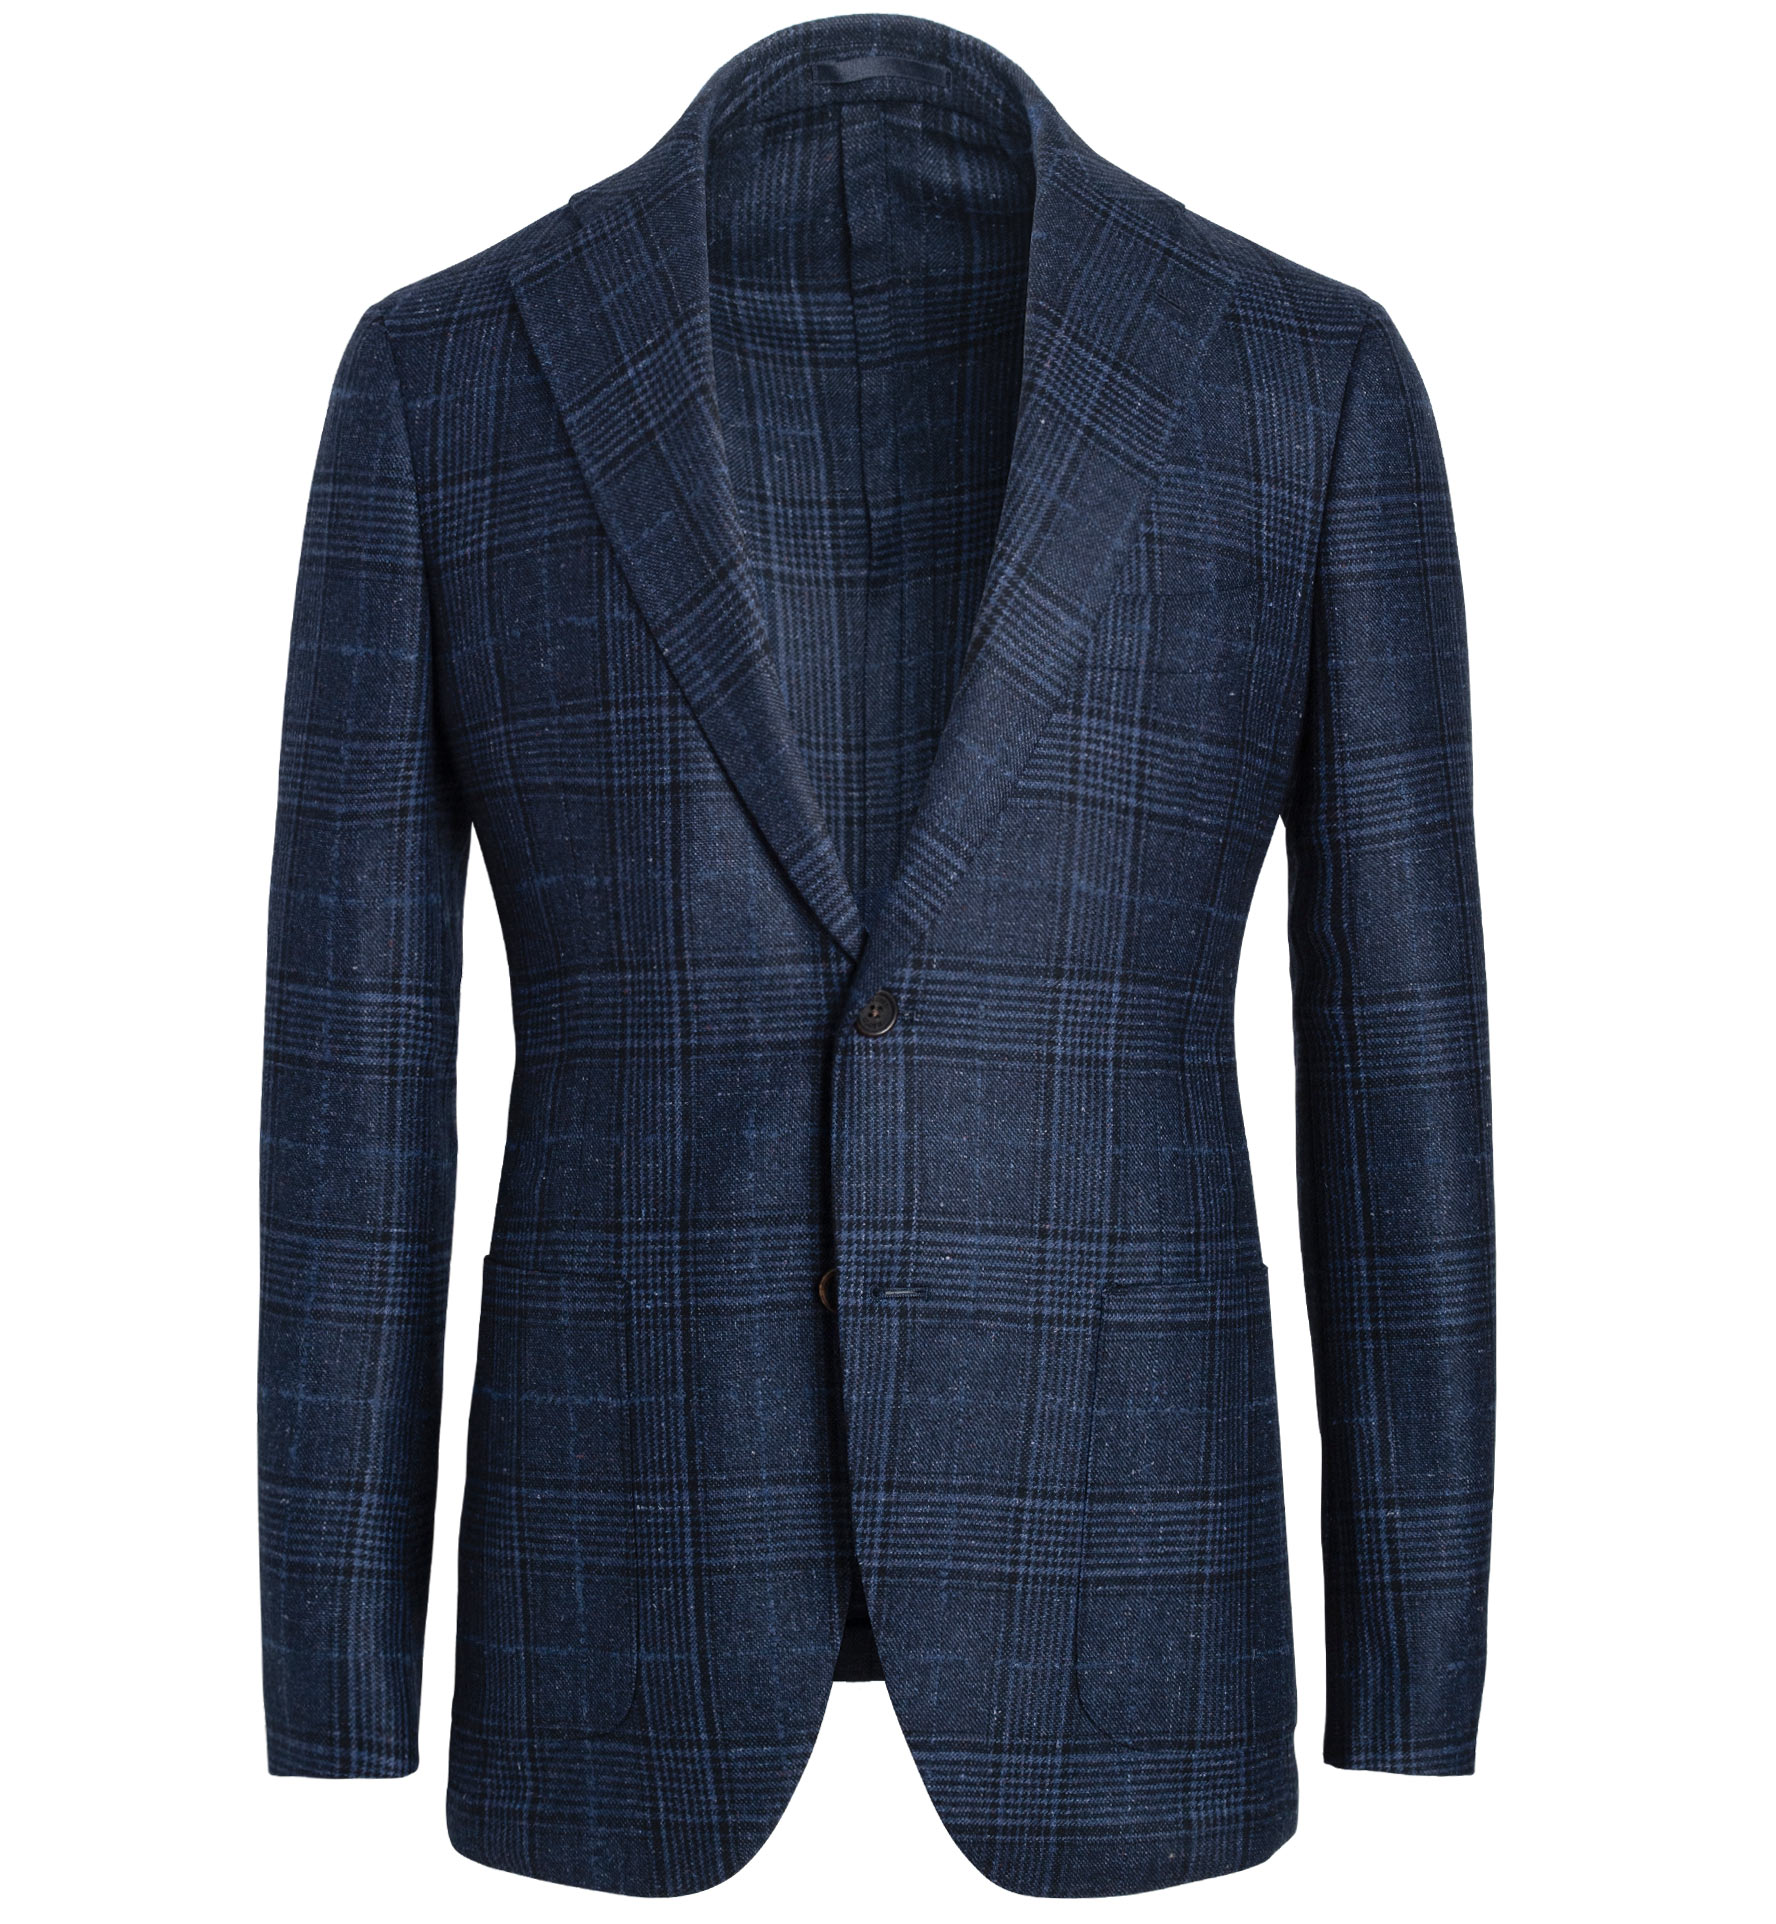 Zoom Image of Bedford Navy Glen Plaid Slub Wool and Silk Jacket